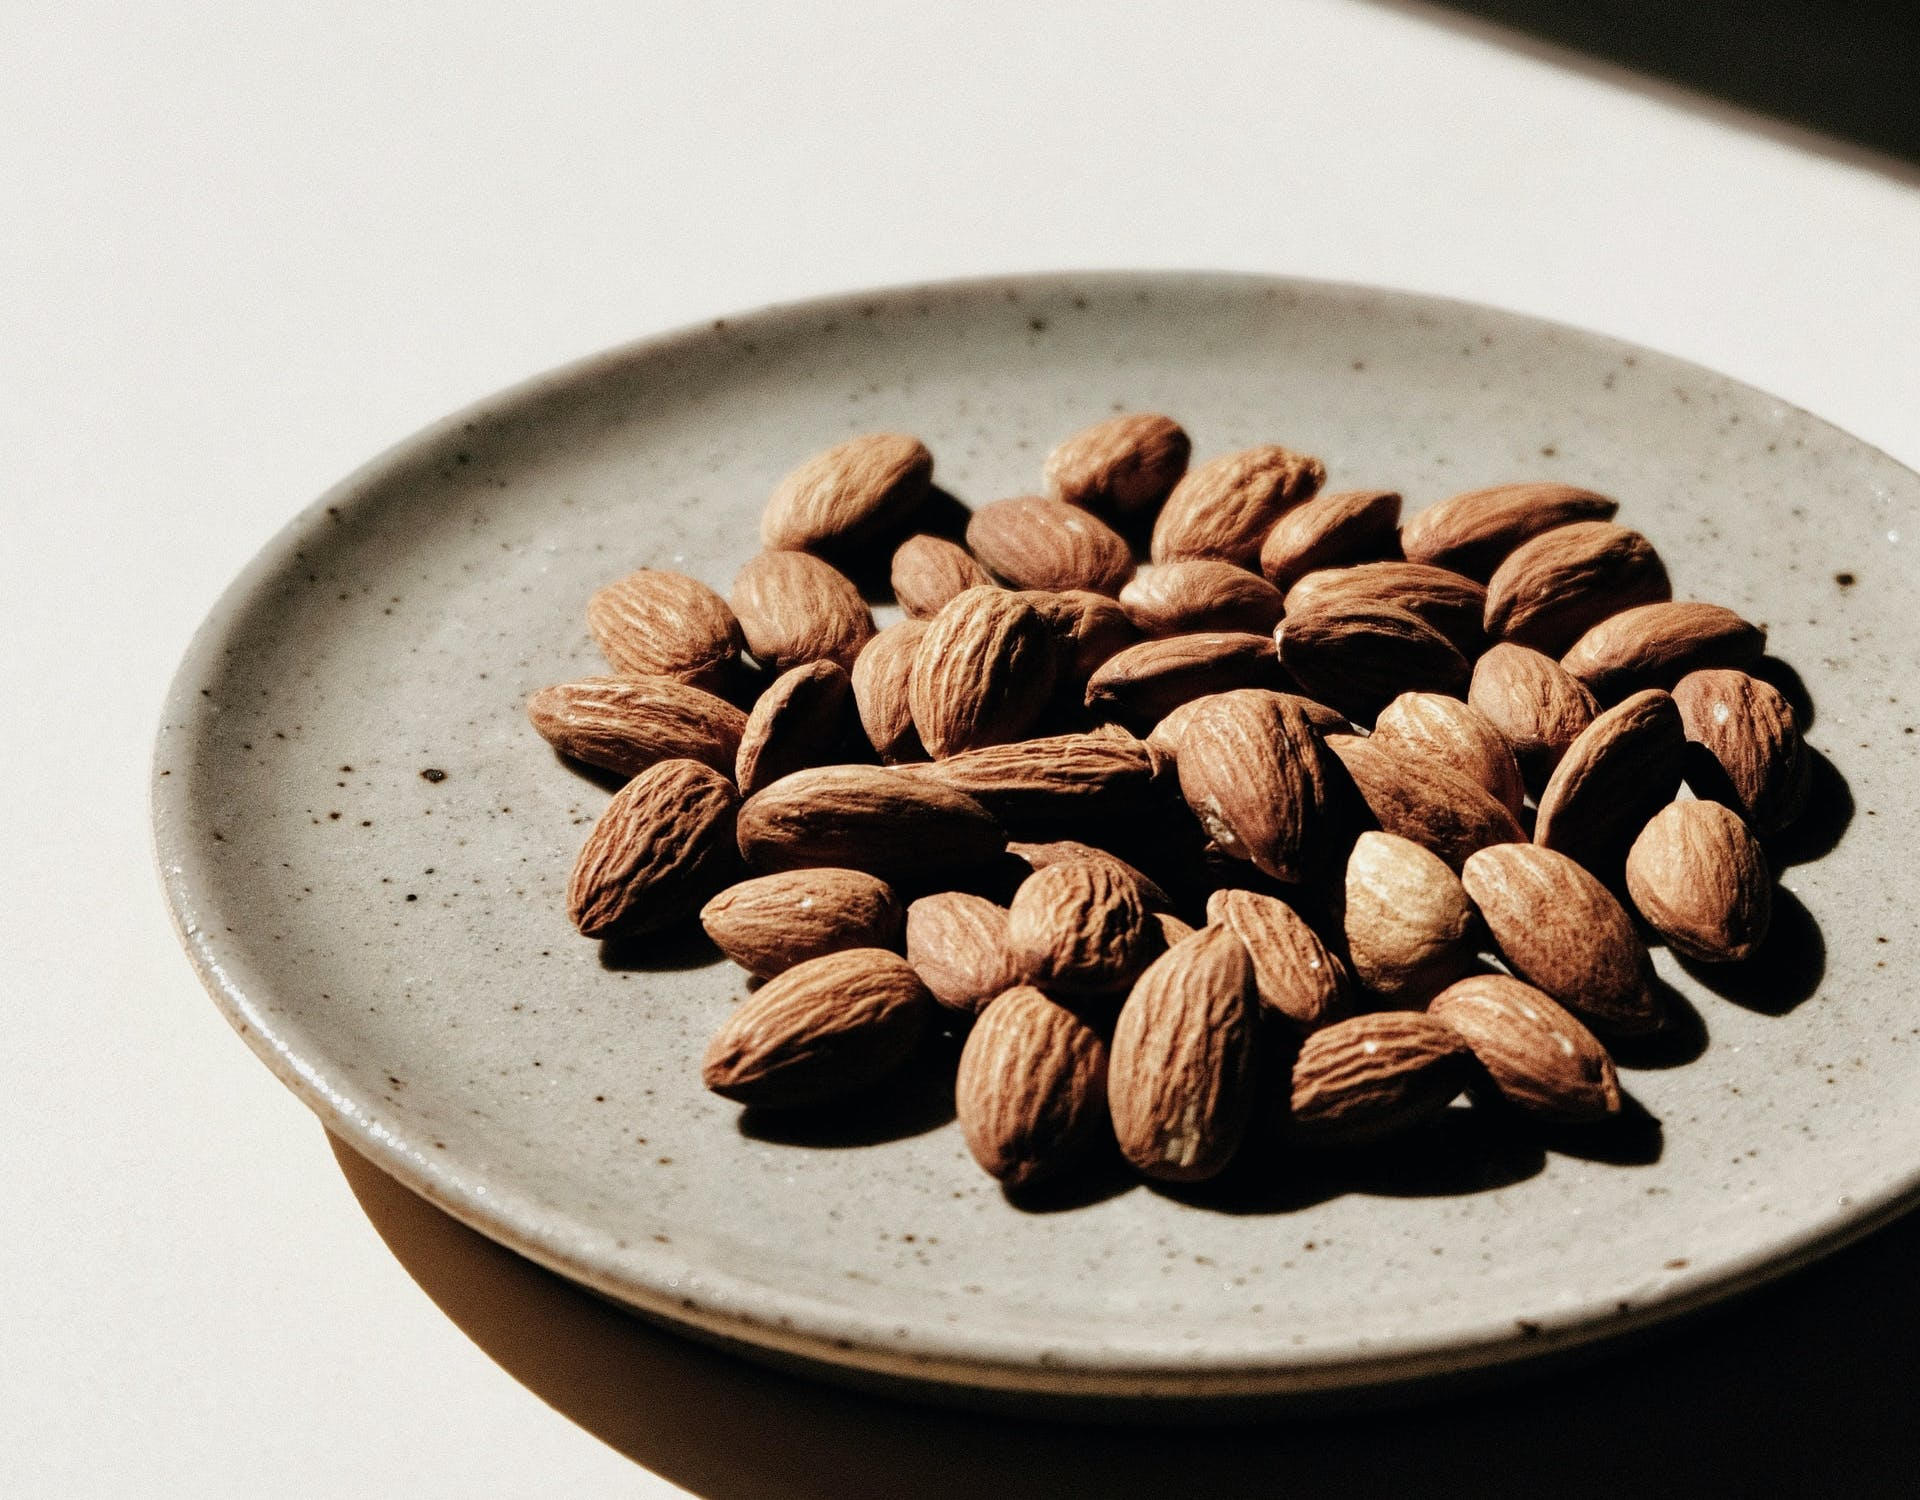 a plate of almonds